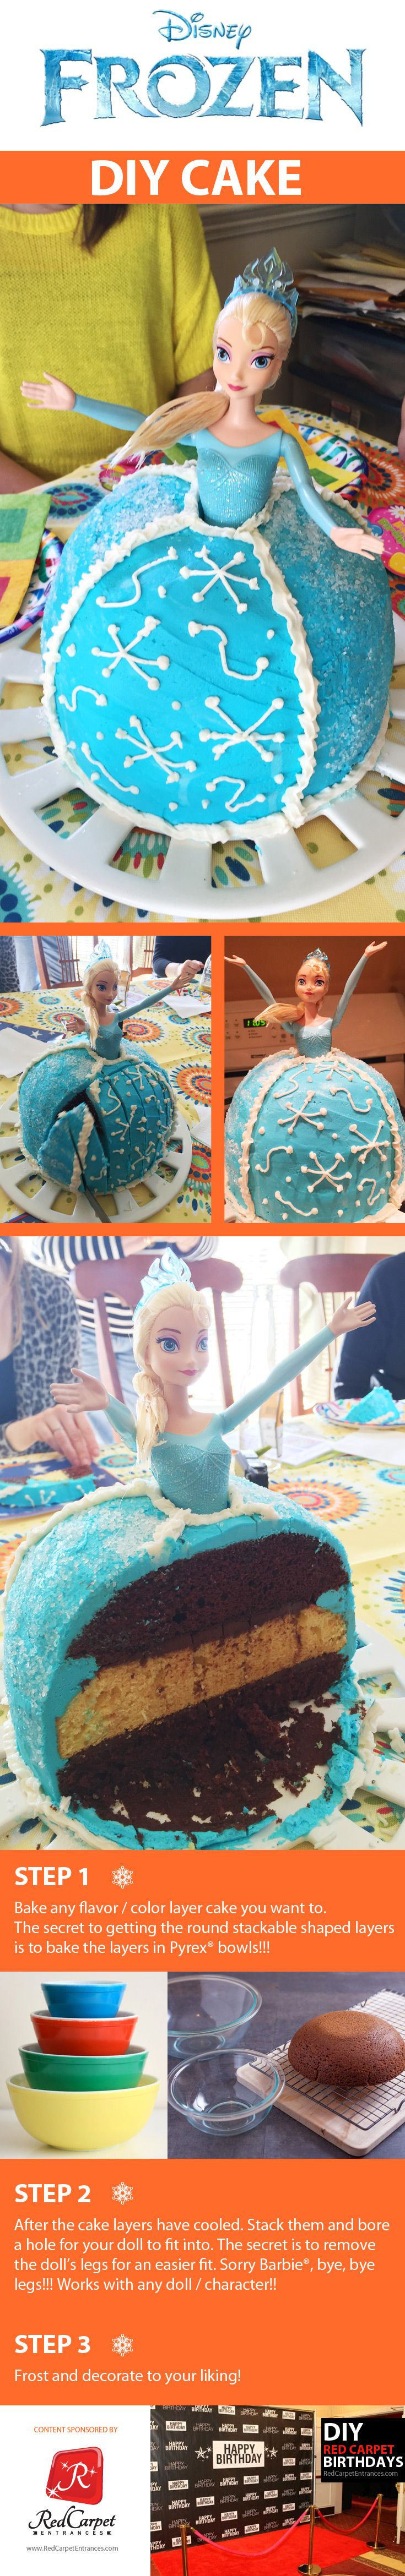 Disney Frozen themed Birthday Cake featuring Elsa with decorative snowflake frosting! Simple do-it-yourself (DIY) method, easy for anyone to bake and LET IT GO down the mouths of hungry friends and family!